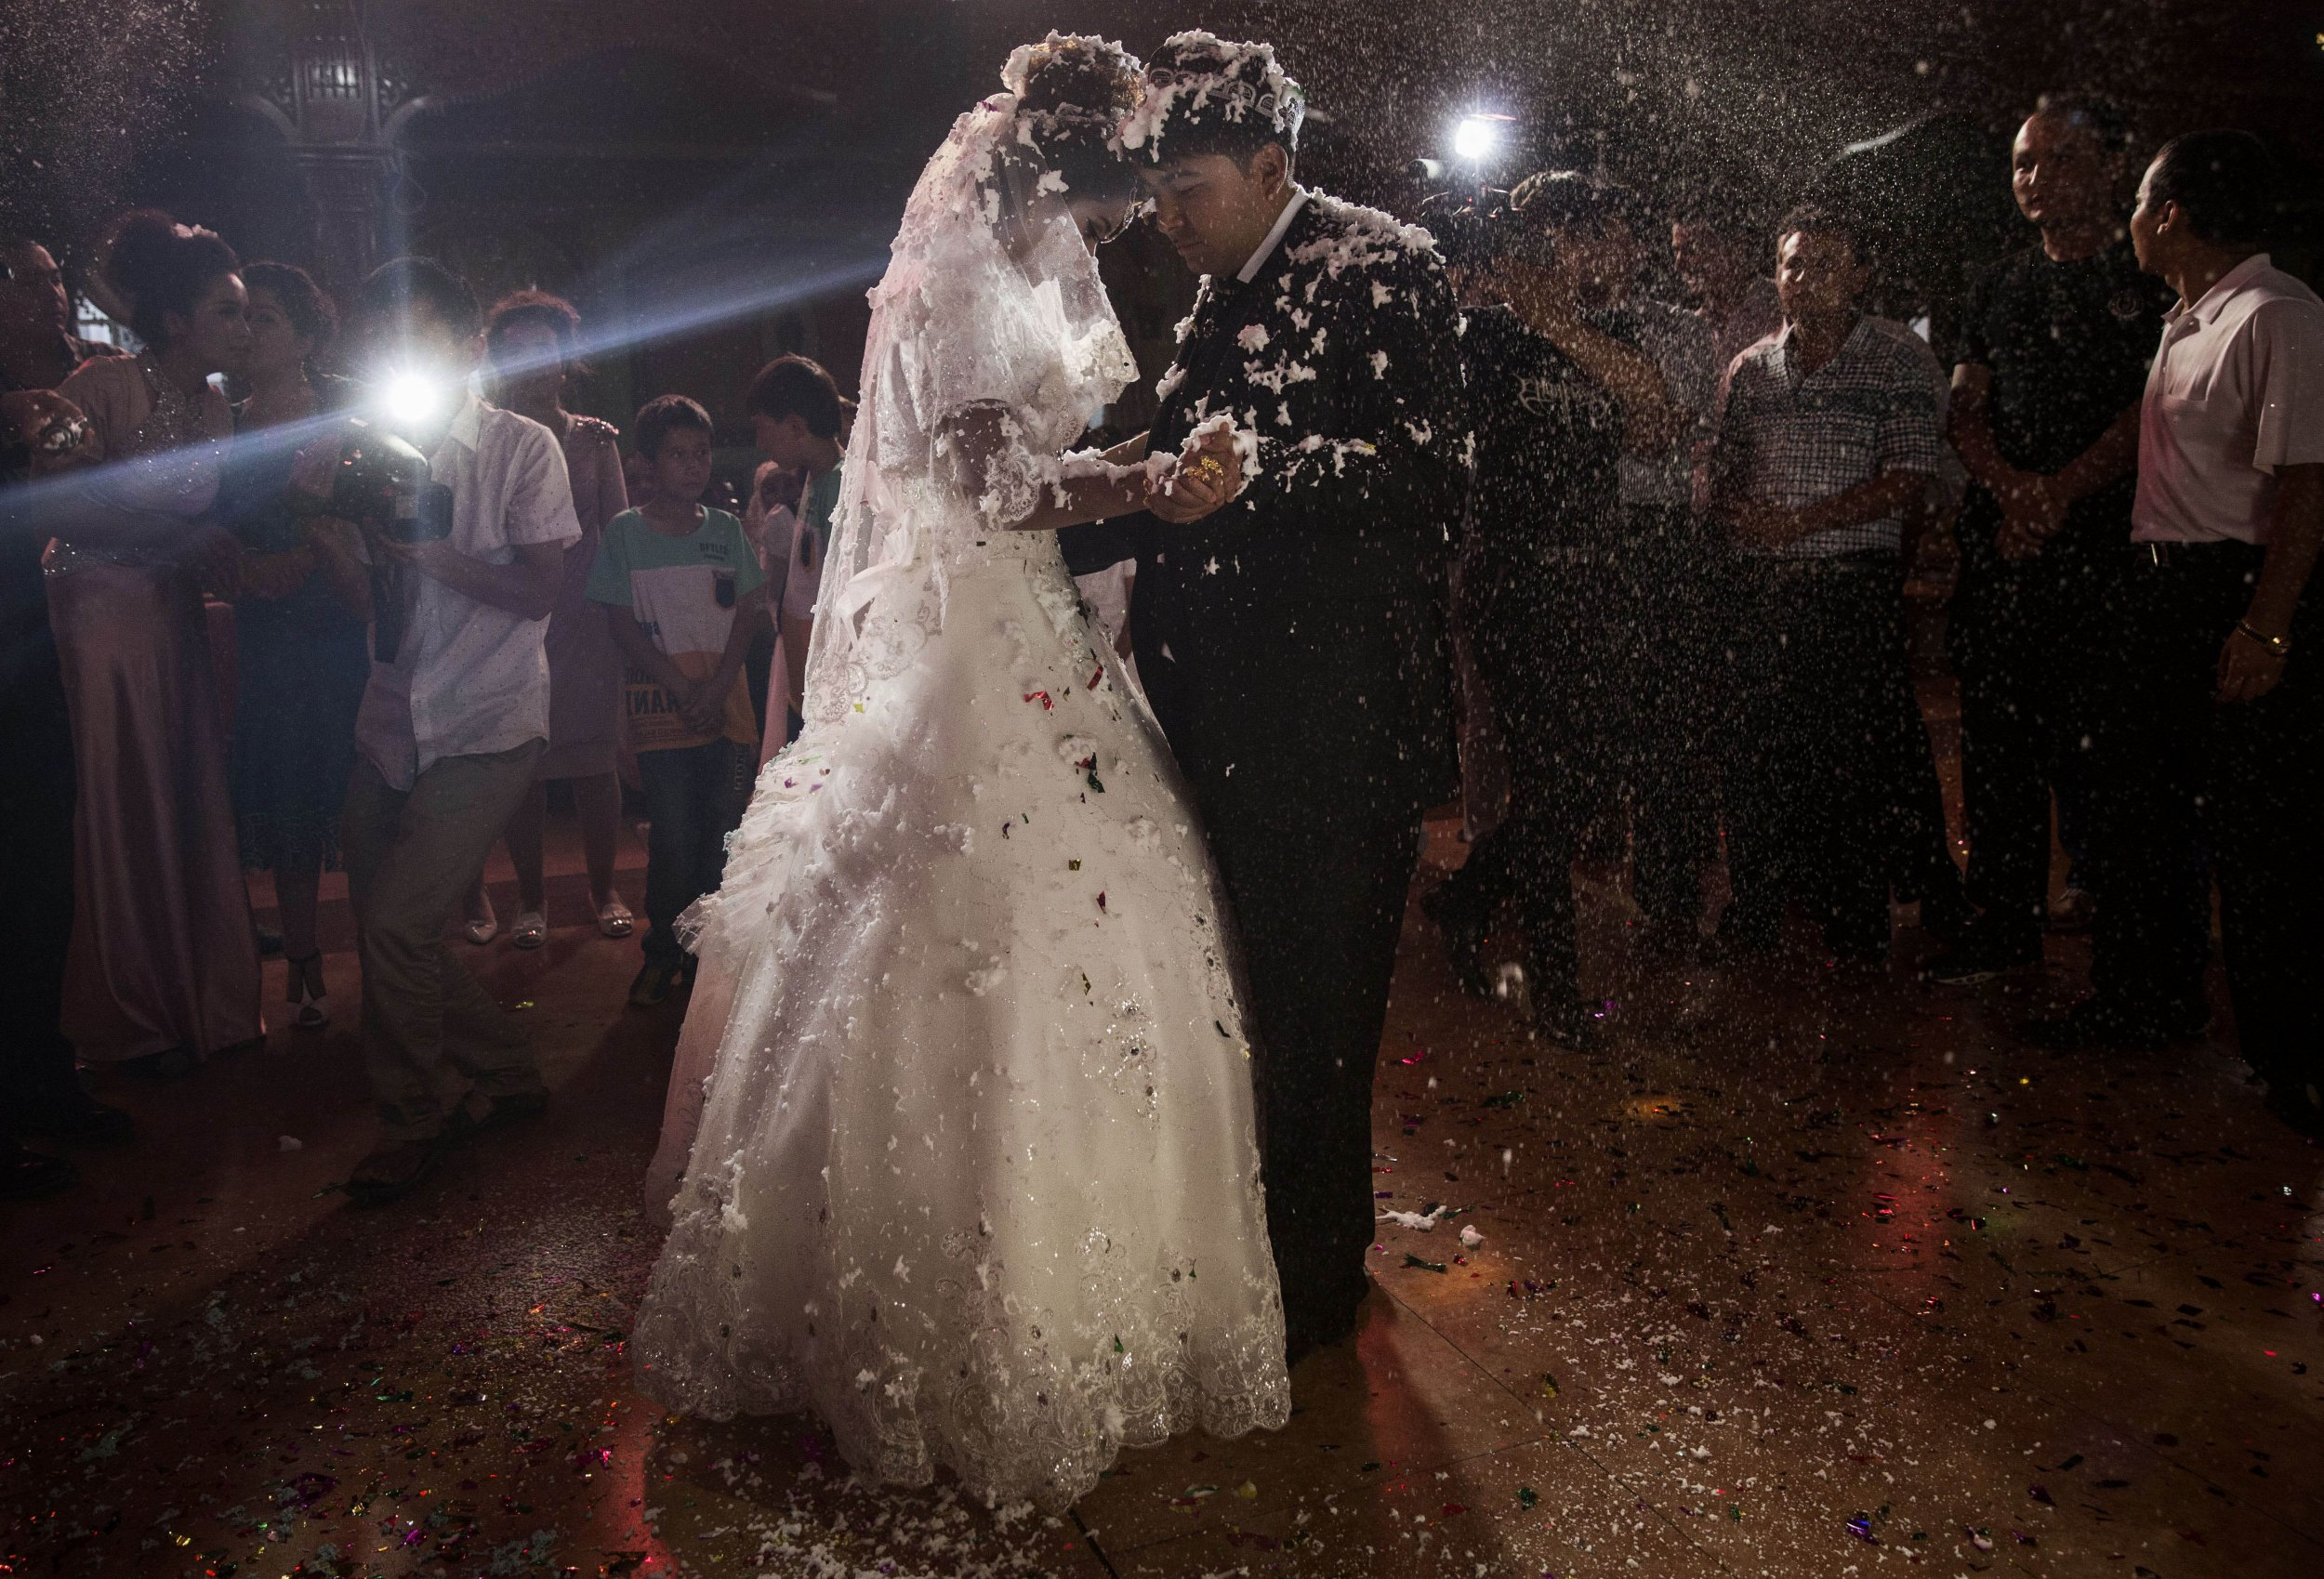 First Dance At Their Wedding Celebration After Being Married In Xinjiang Uyghur China August 2 2014 DJs Have Revealed The Most Popular Songs